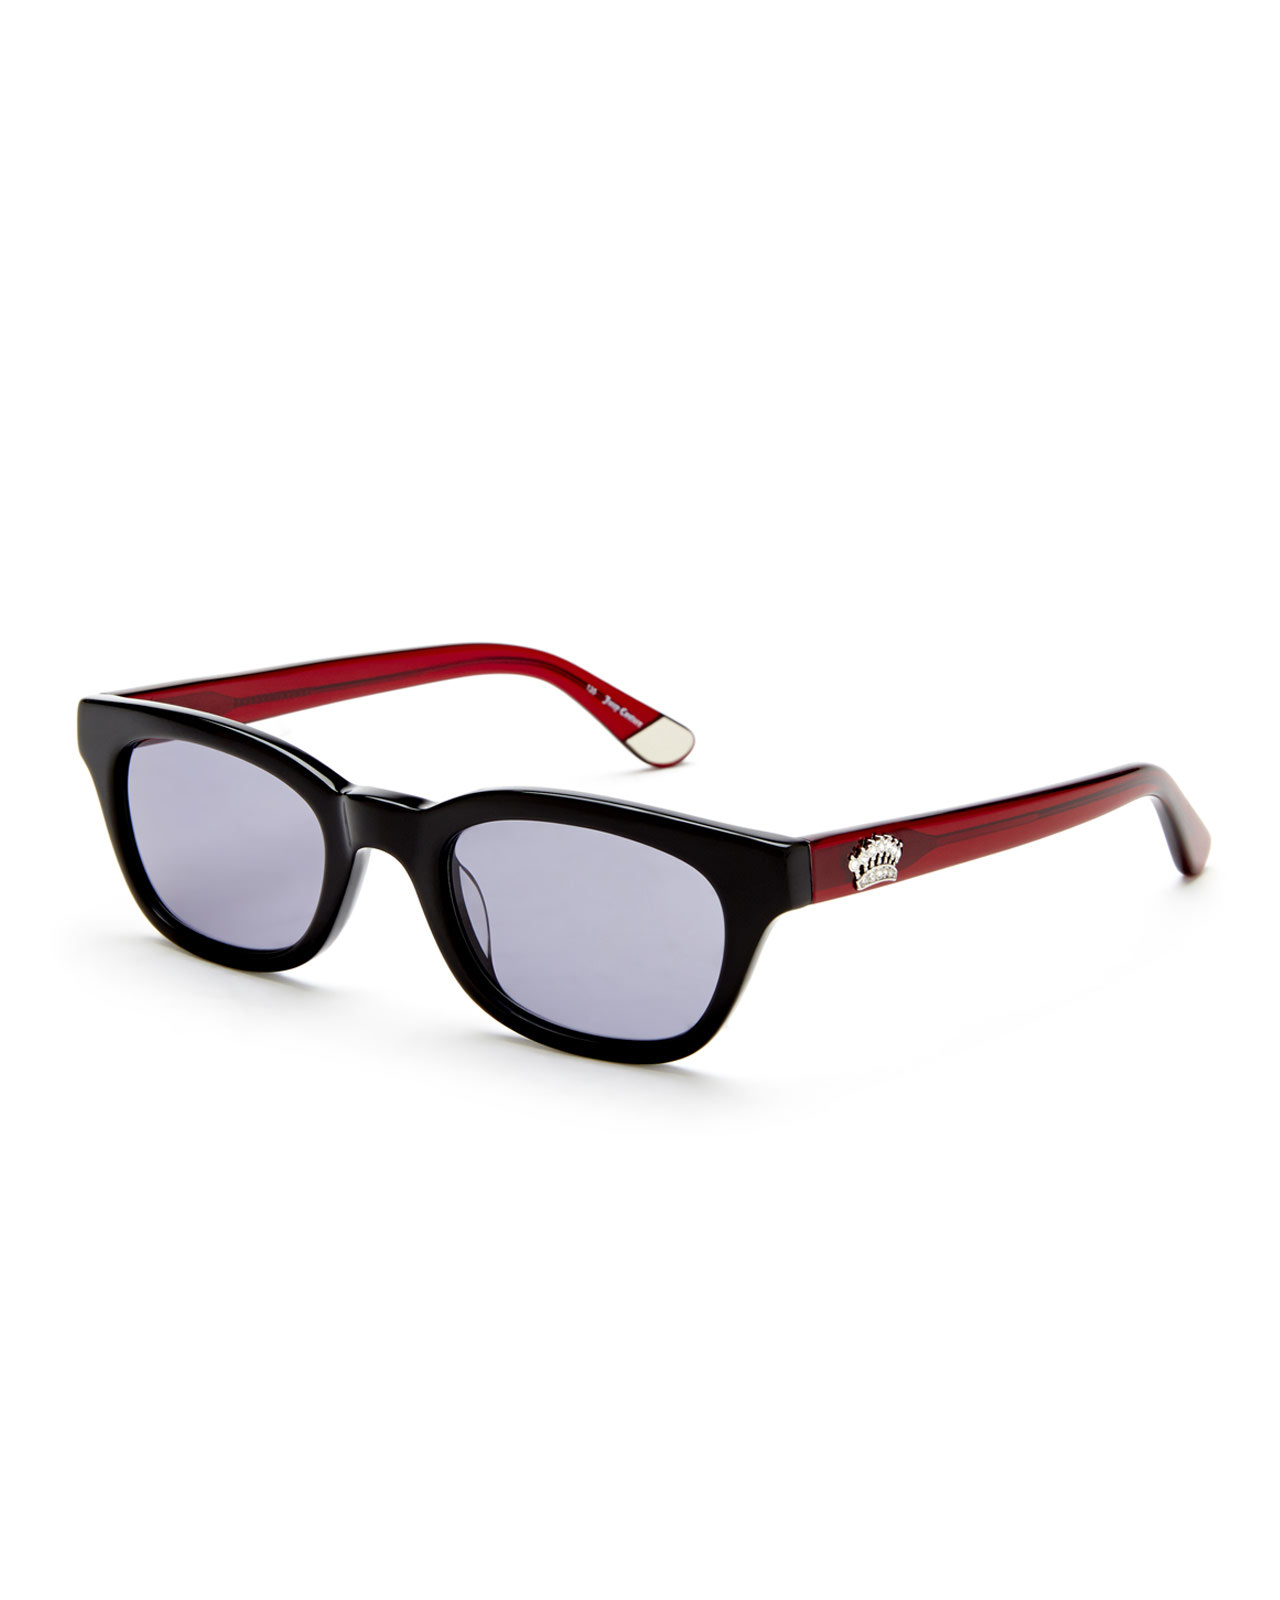 Juicy couture 534/S Black & Red Aviator Sunglasses in Red ...